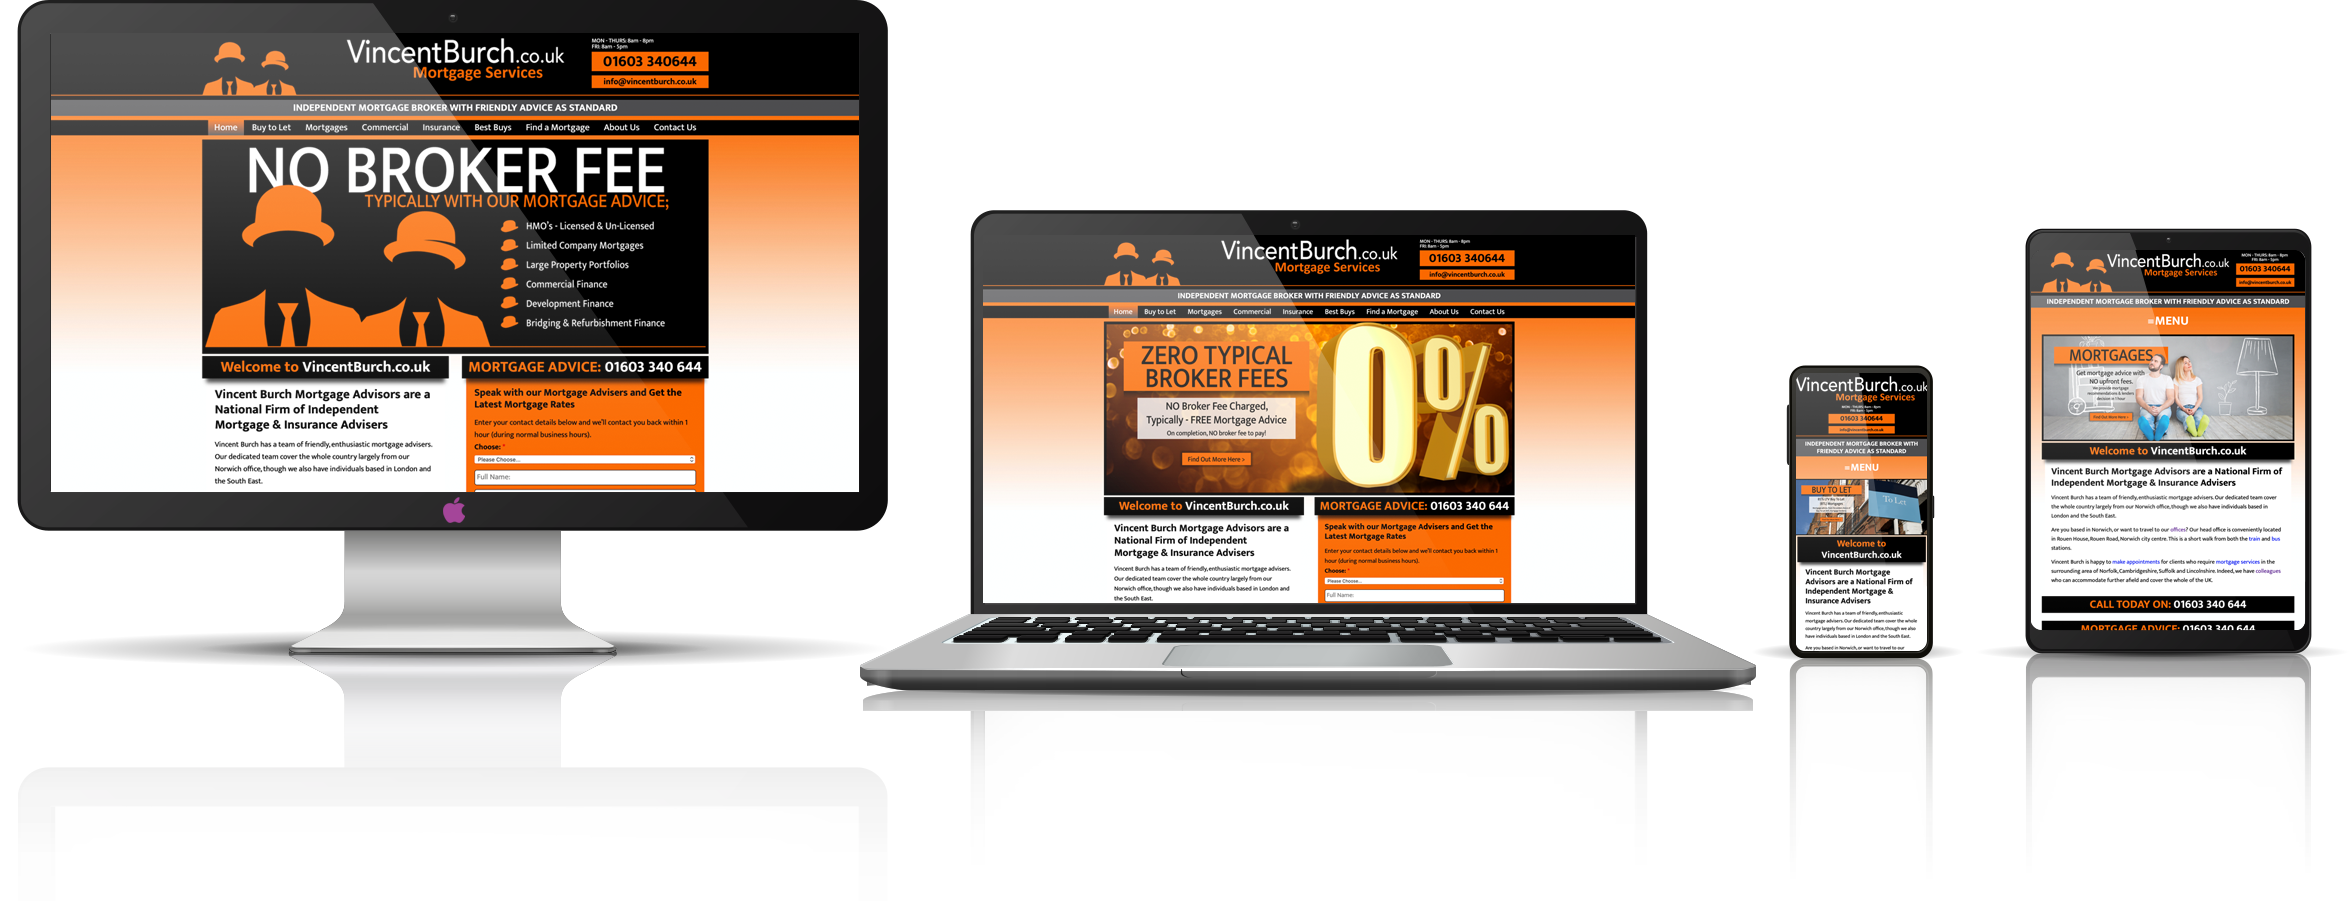 The Vincent Burch Mortgage Services fully responsive mock-up images showing desktop, laptop, tablet, and mobile phone devices.